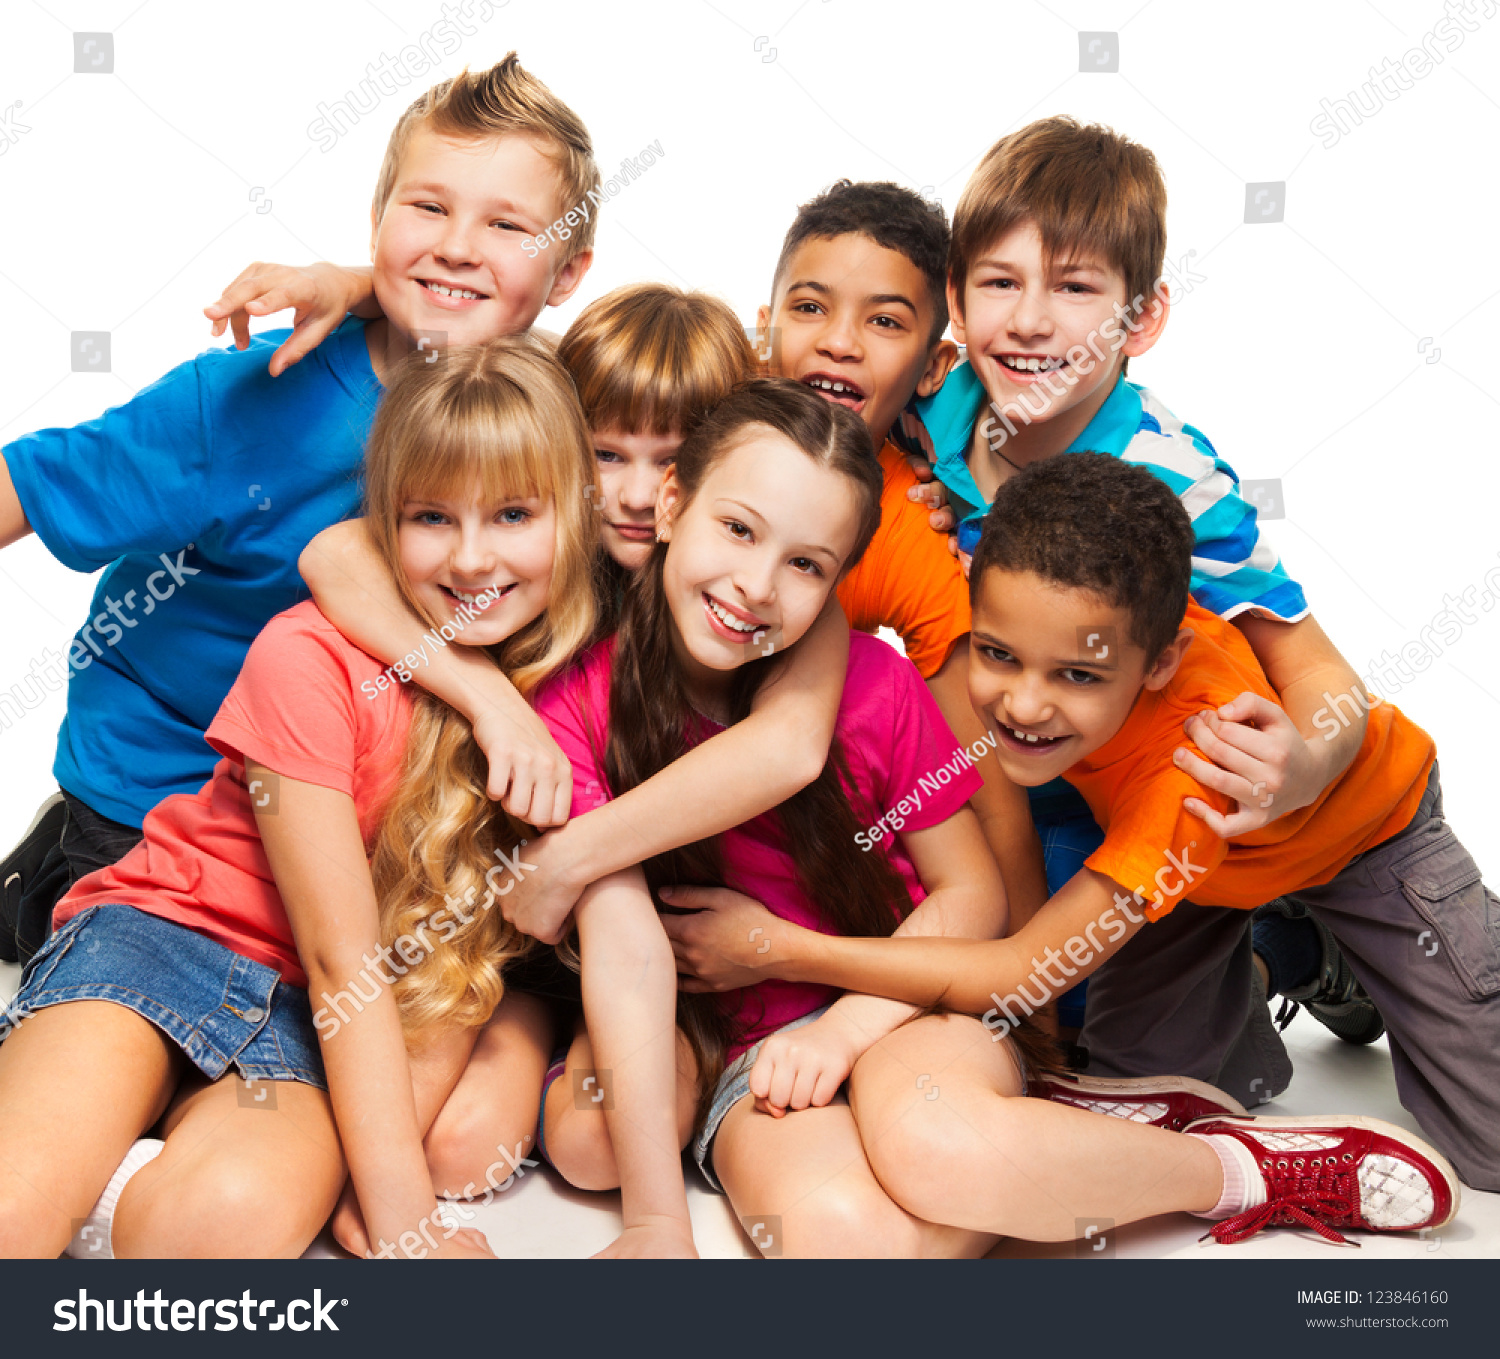 Group of happy smiling kids sitting together and playing boys and girls black and caucasian